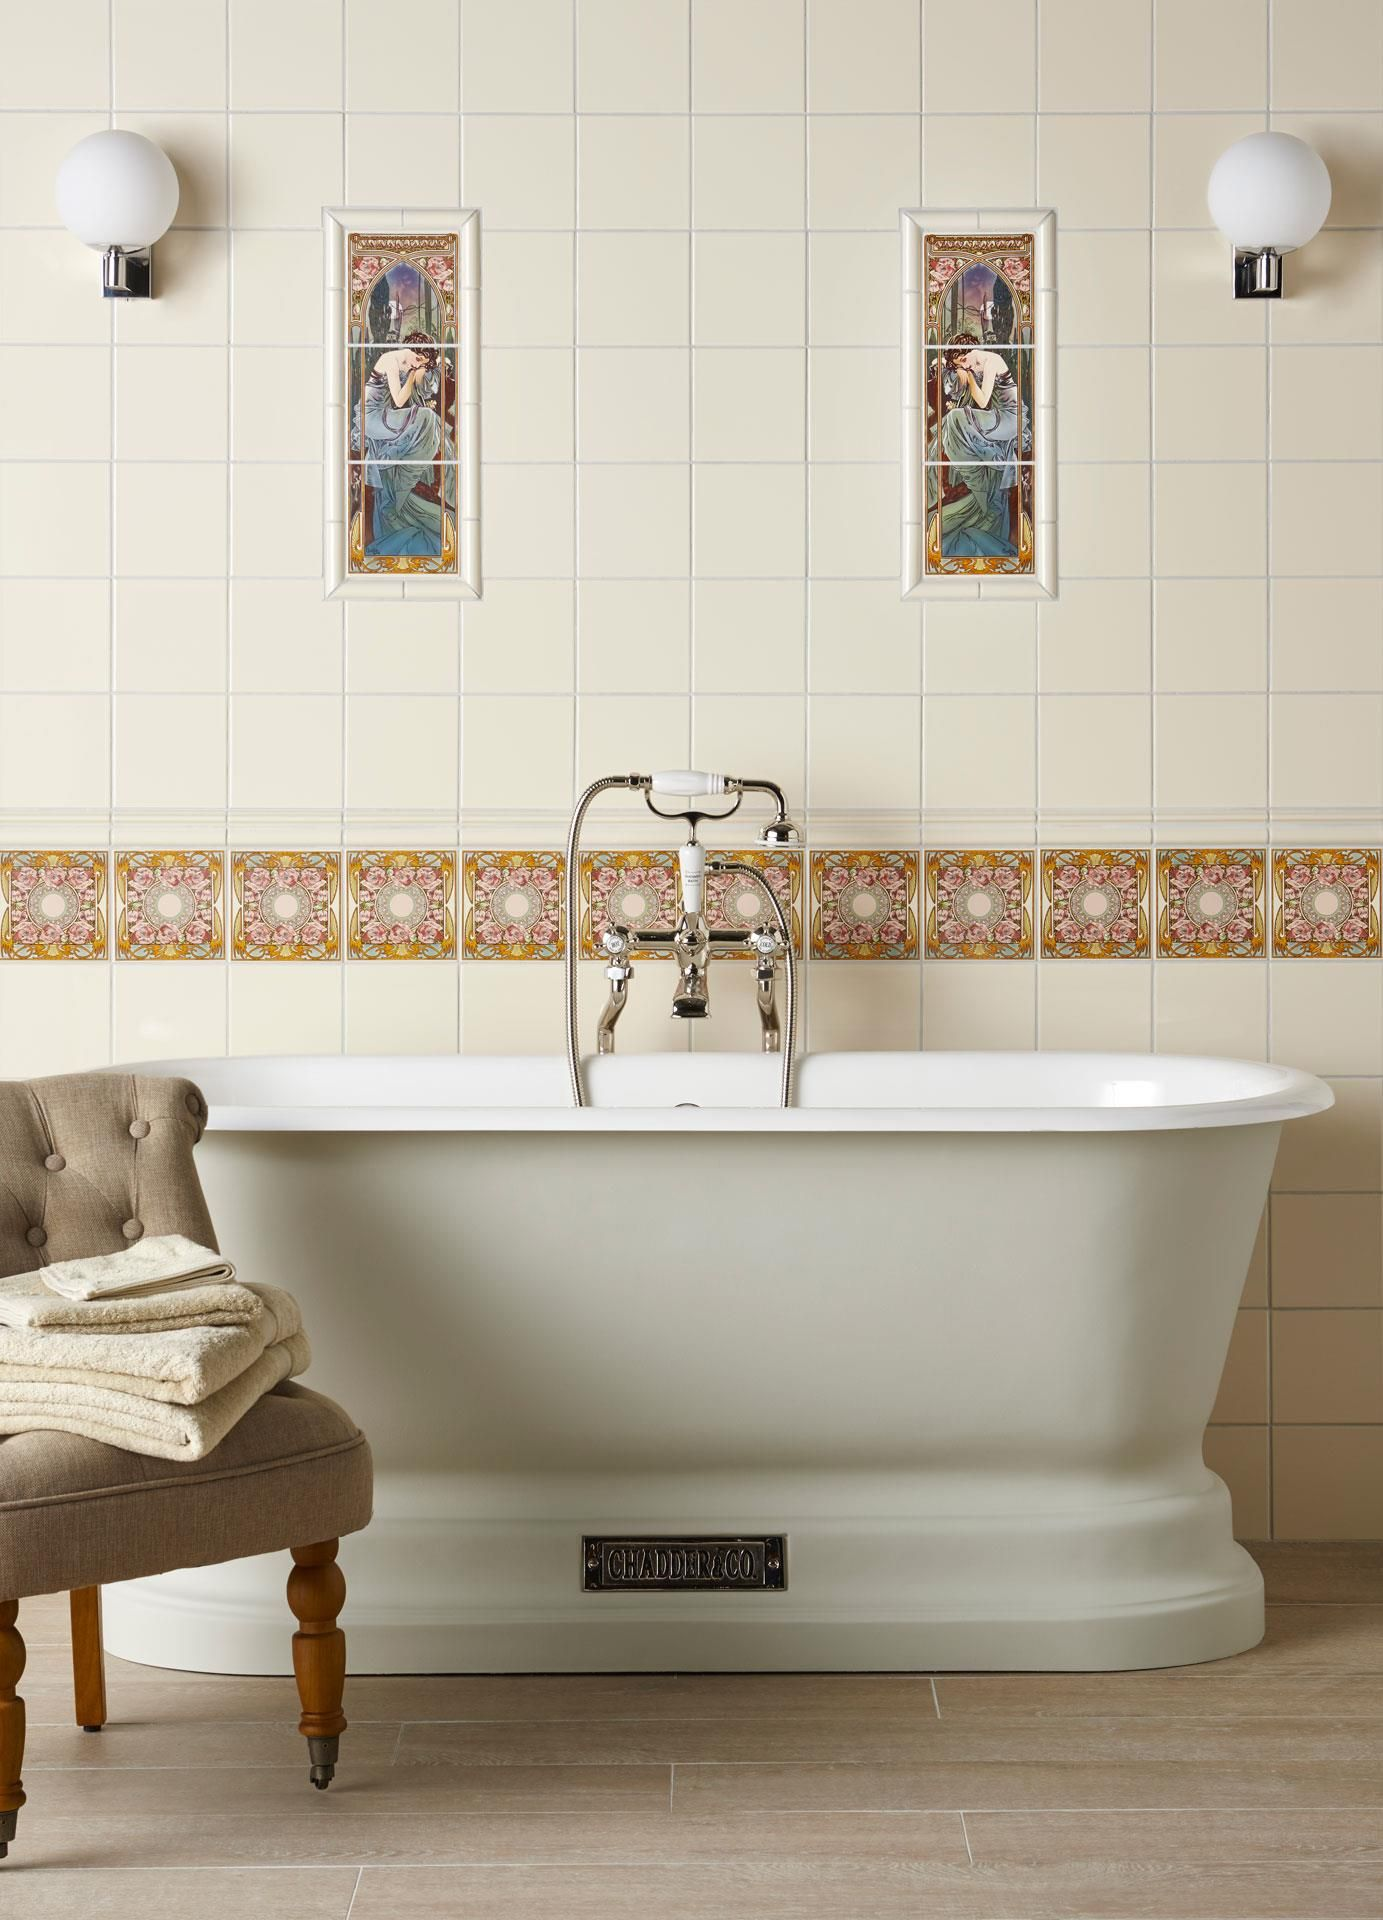 Decorative Tile Panels Image Result For Decorative Tile Panel Bathroom  Bathroom  Pinterest